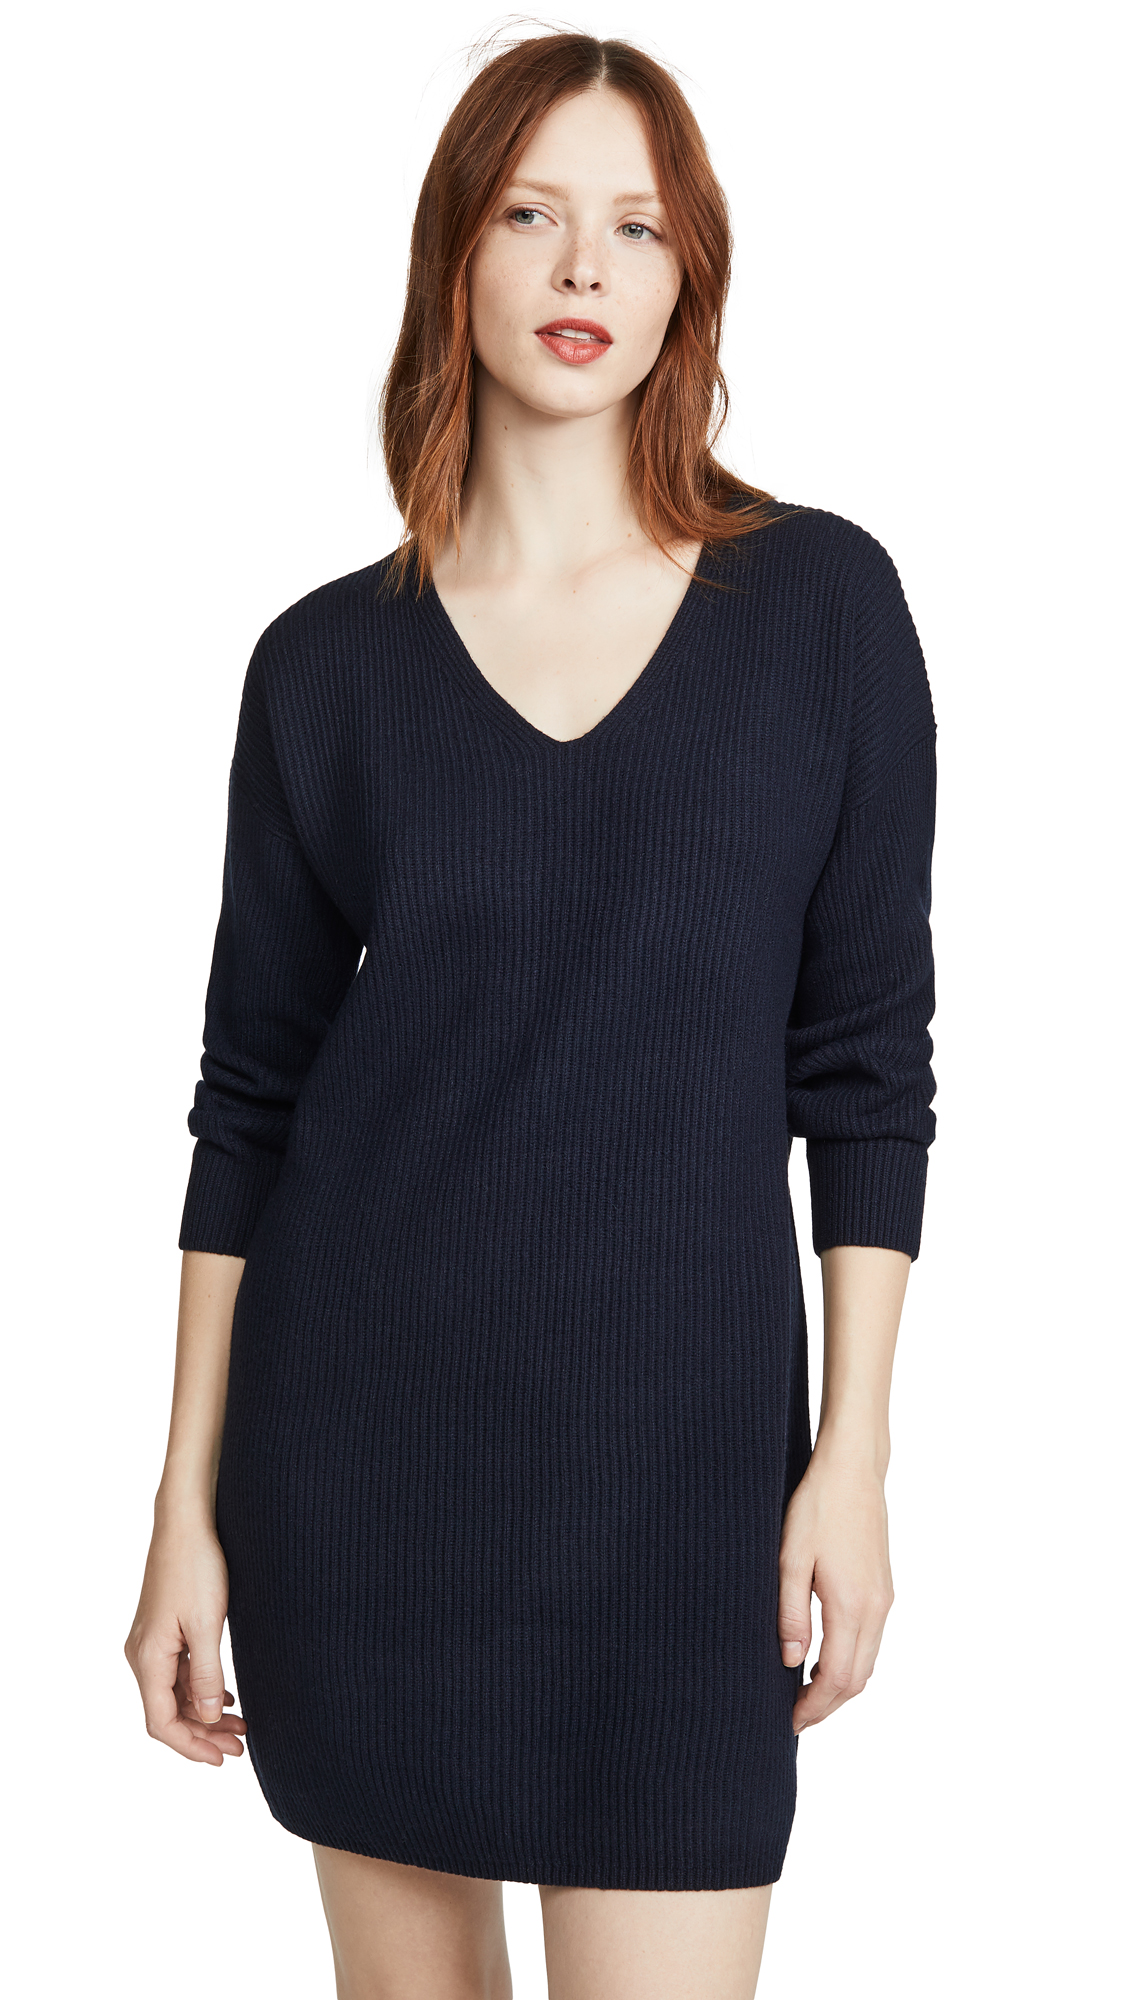 Buy Madewell V Neck Mini Sweater Dress online beautiful Madewell Clothing, Dresses